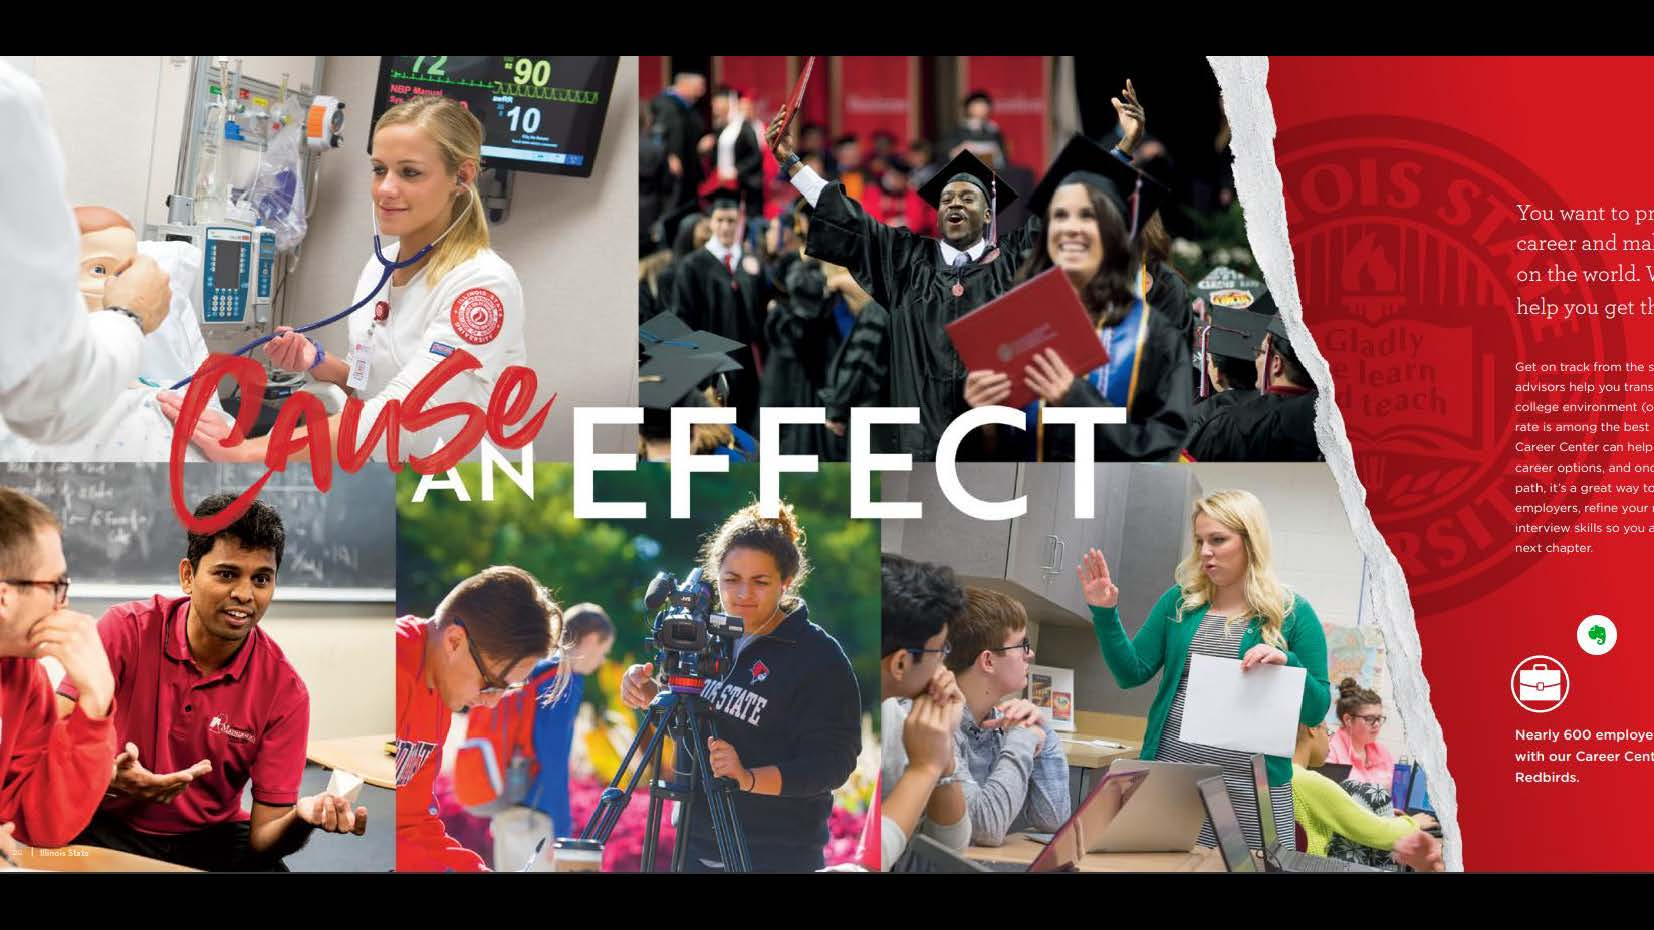 Publications, Student Recruitment-Individual Publication (Gold): Illinois State University Viewbook 2020 designed by Michael Mahle and Evan Walles and with photography by Lyndsie Schlink for the Office of Admissions. Cause and effect